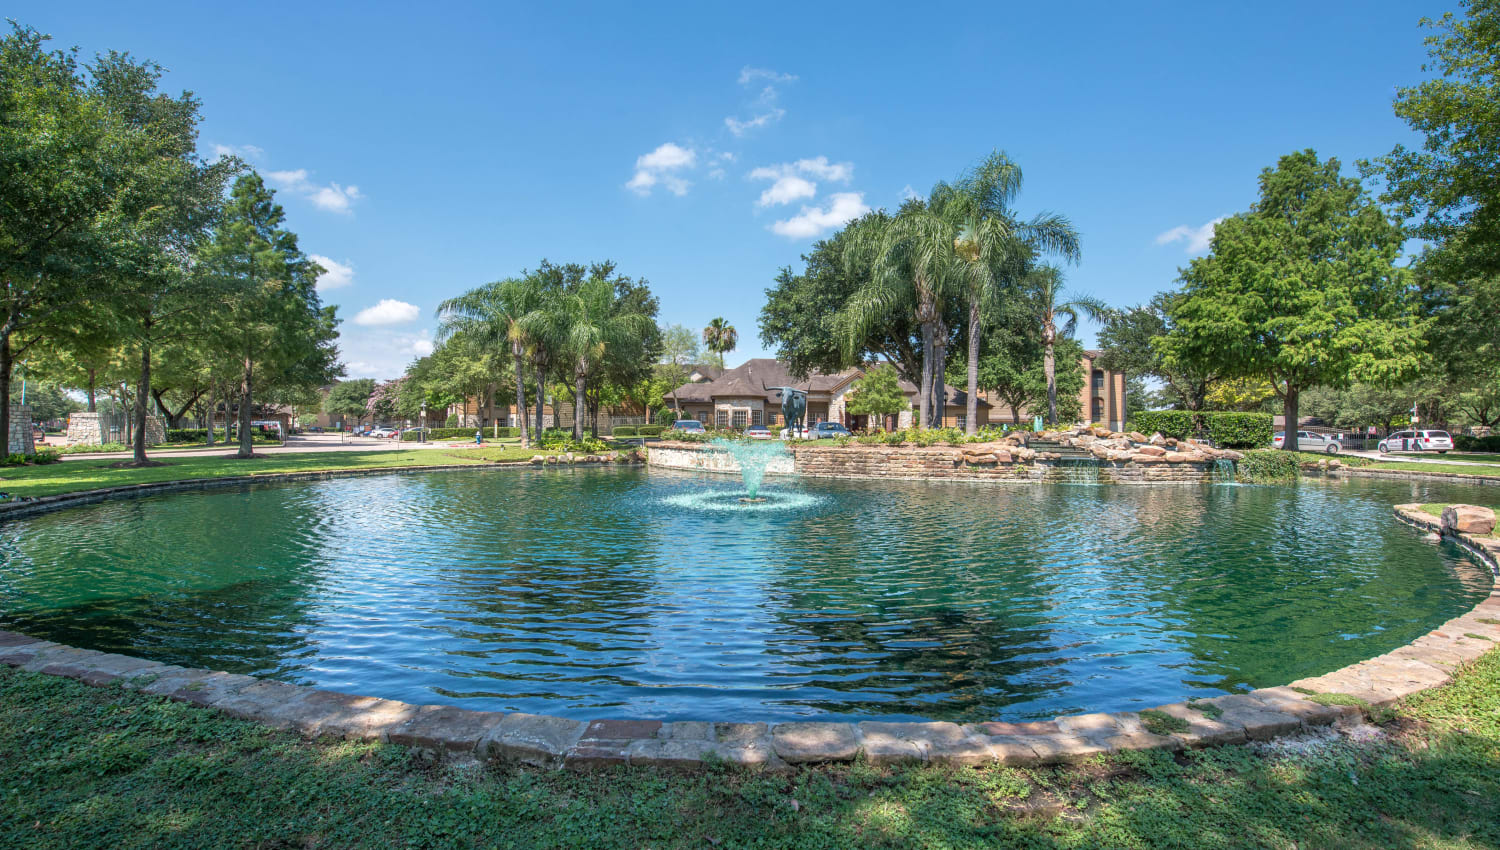 Onsite pond surrounded by mature trees at The Ranch at Shadow Lake in Houston, Texas